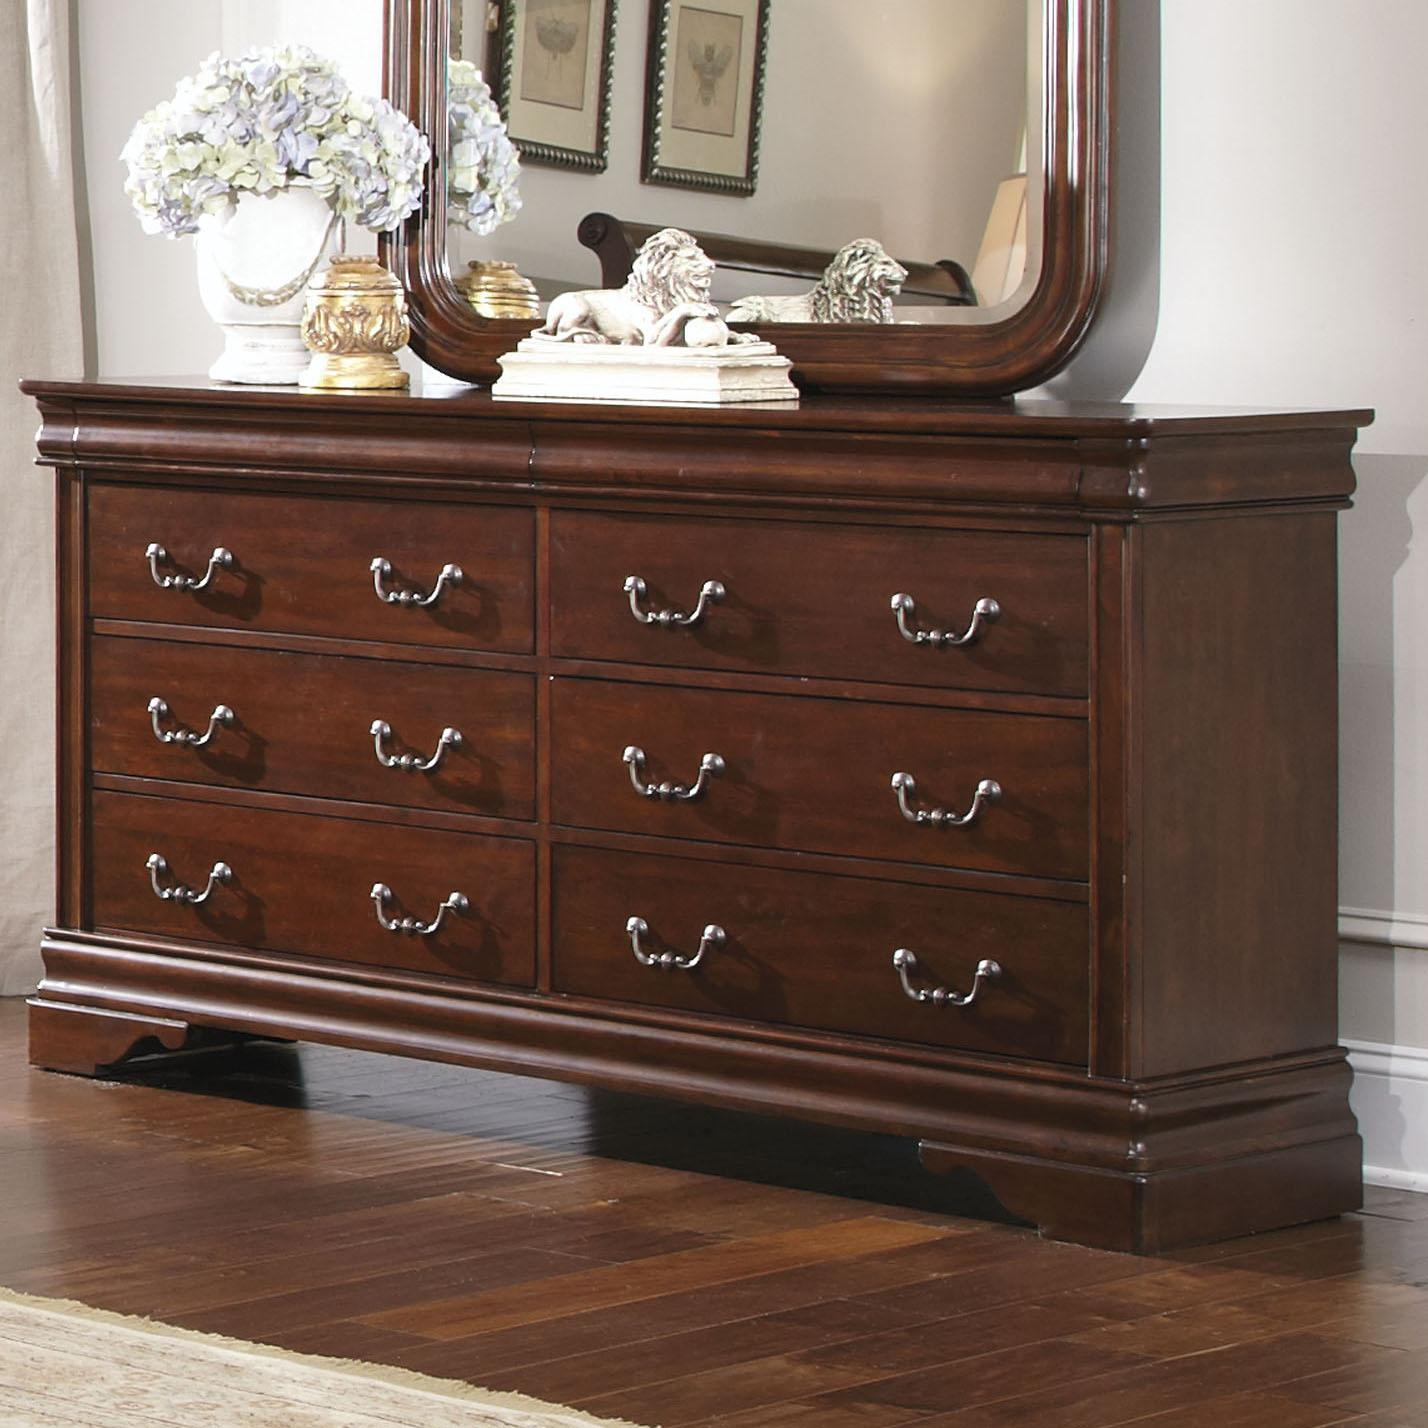 Liberty Furniture Carriage Court Single Dresser - Item Number: 709-BR30